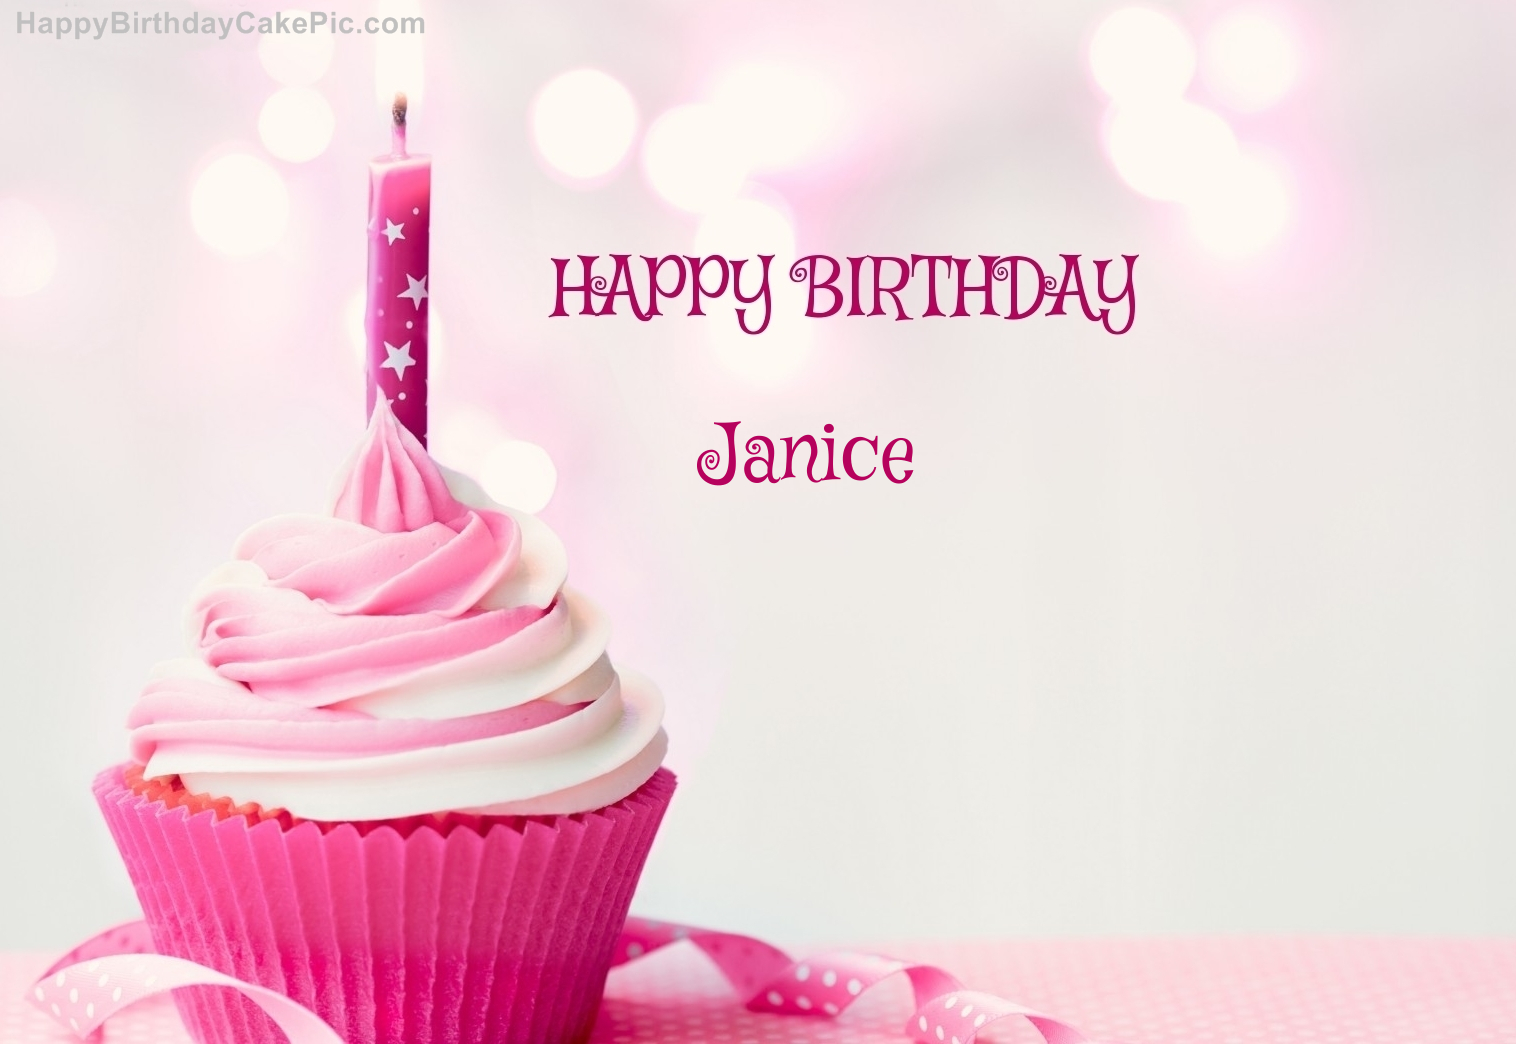 Happy Birthday Cupcake Candle Pink Cake For Janice